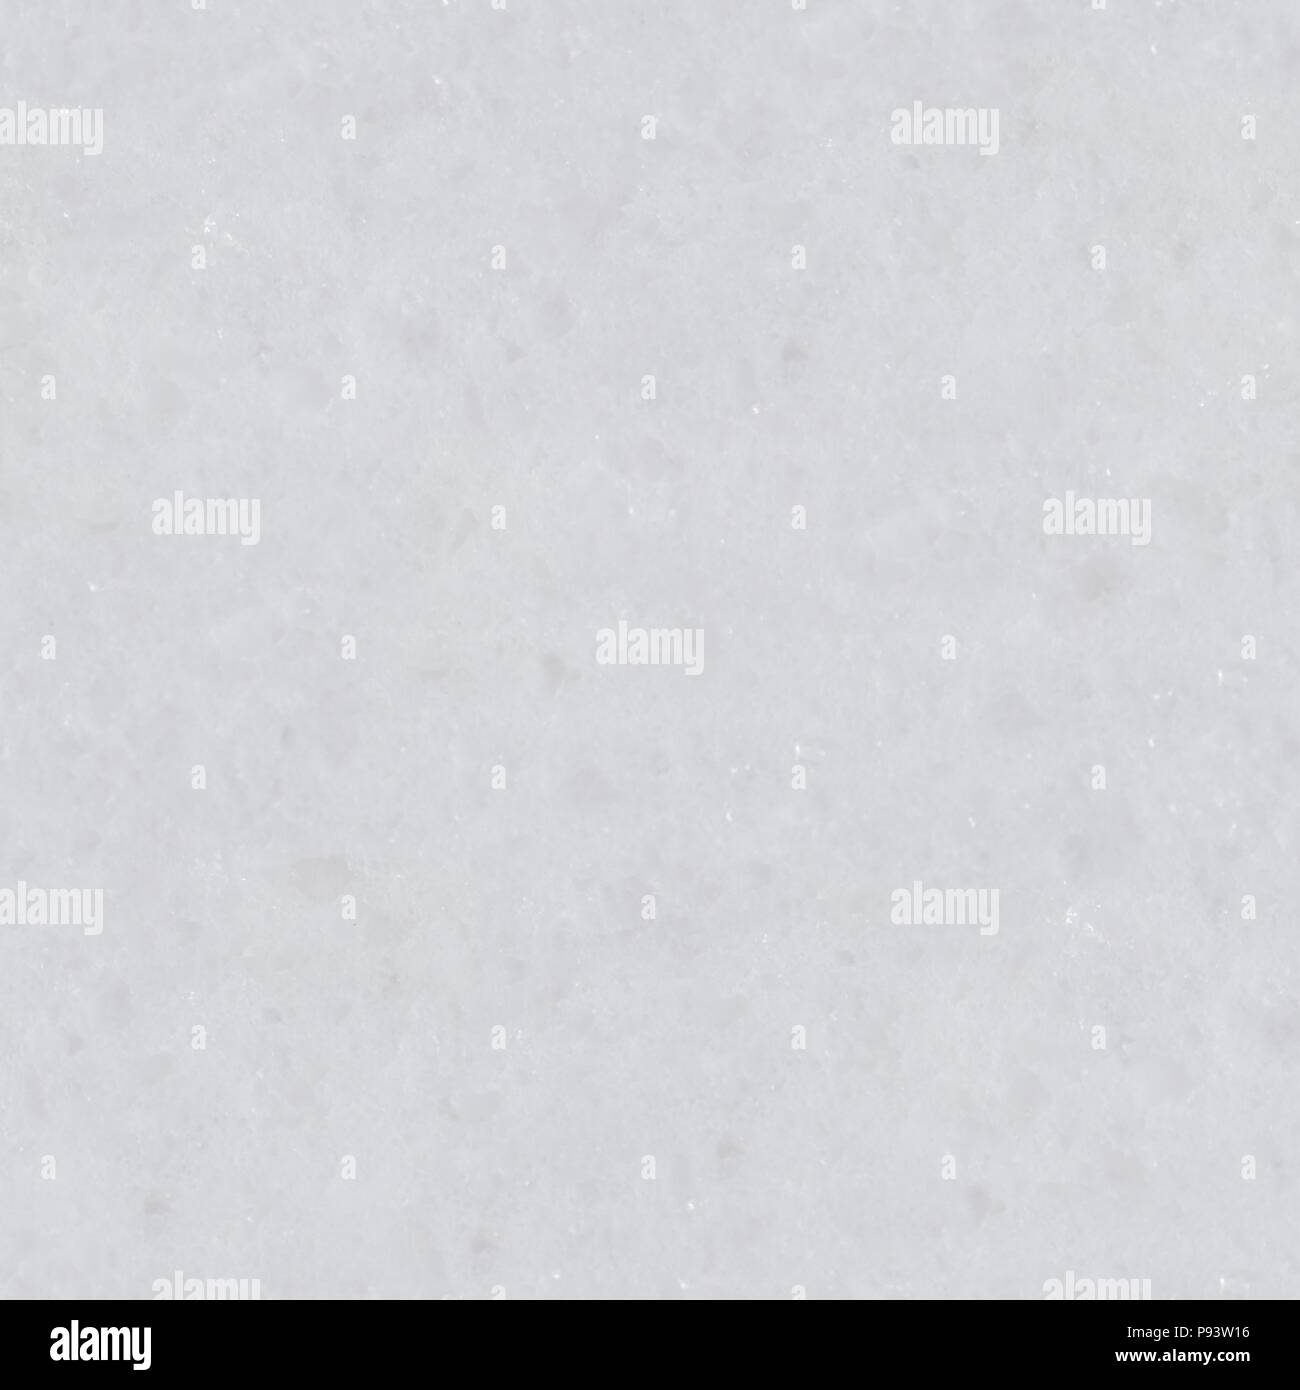 White Rustic Marble Texture Seamless Square Background Tile Re